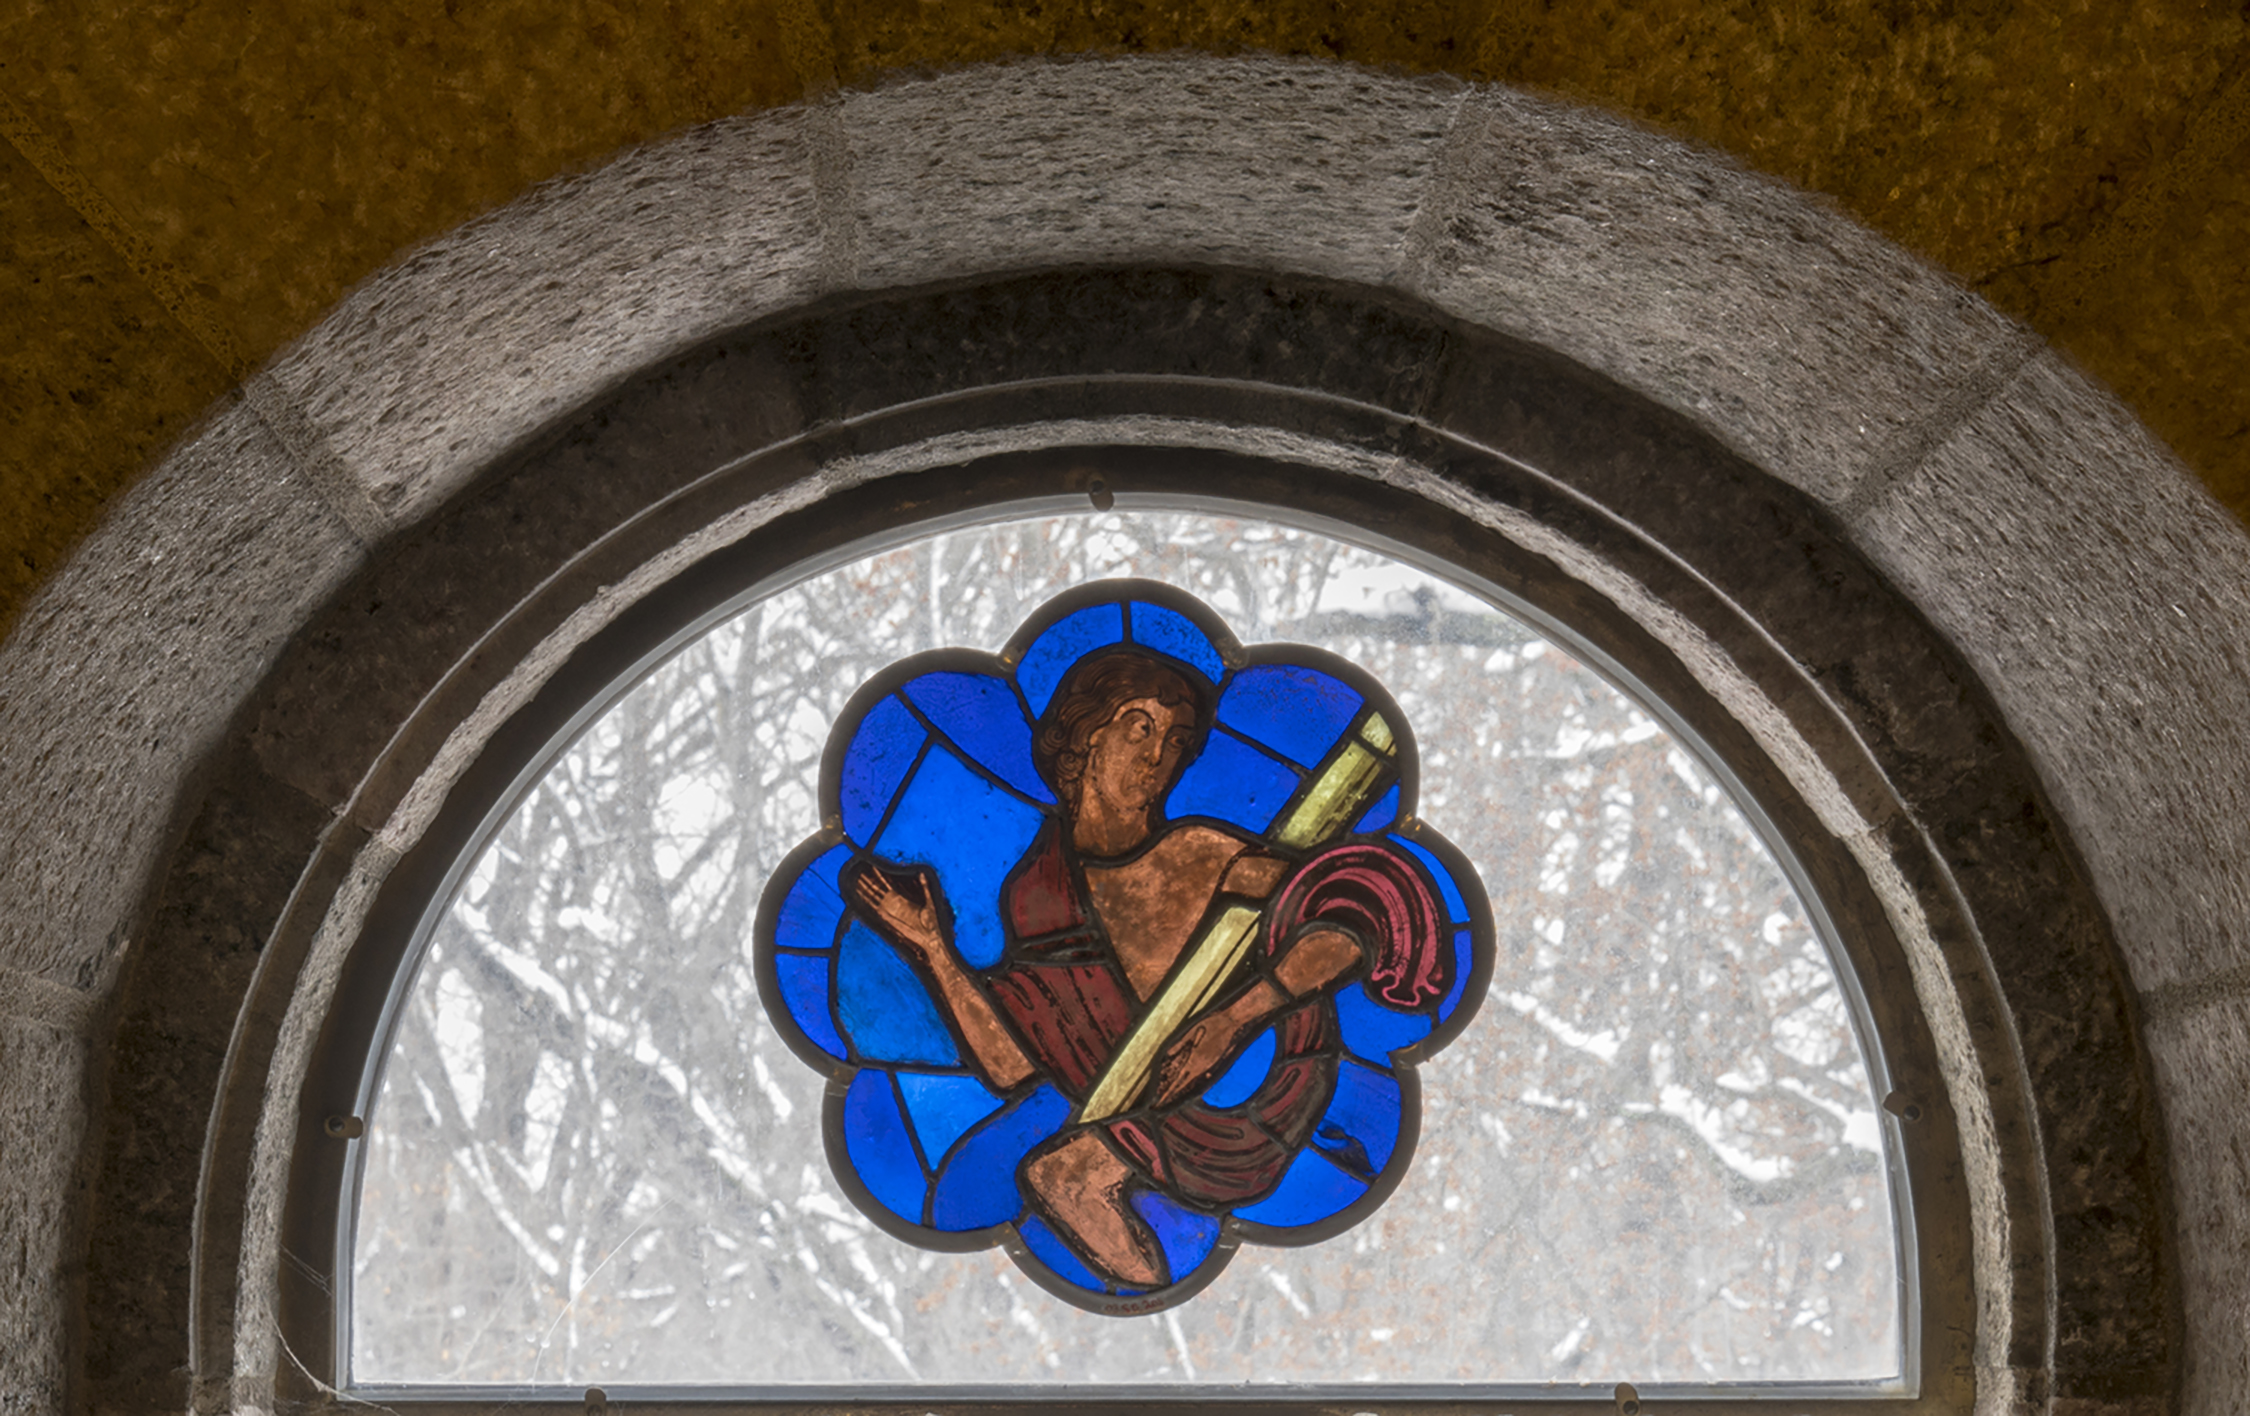 Figure 3:This rose window panel, from an abbey in northeastern France, depicts a male nude figure, half-clad in a shroud, rising from a sarcophagus (ca. 1215-1220, 03.SG.205). The panel is now installed in a clear-glass window on the third floor of Glencairn.